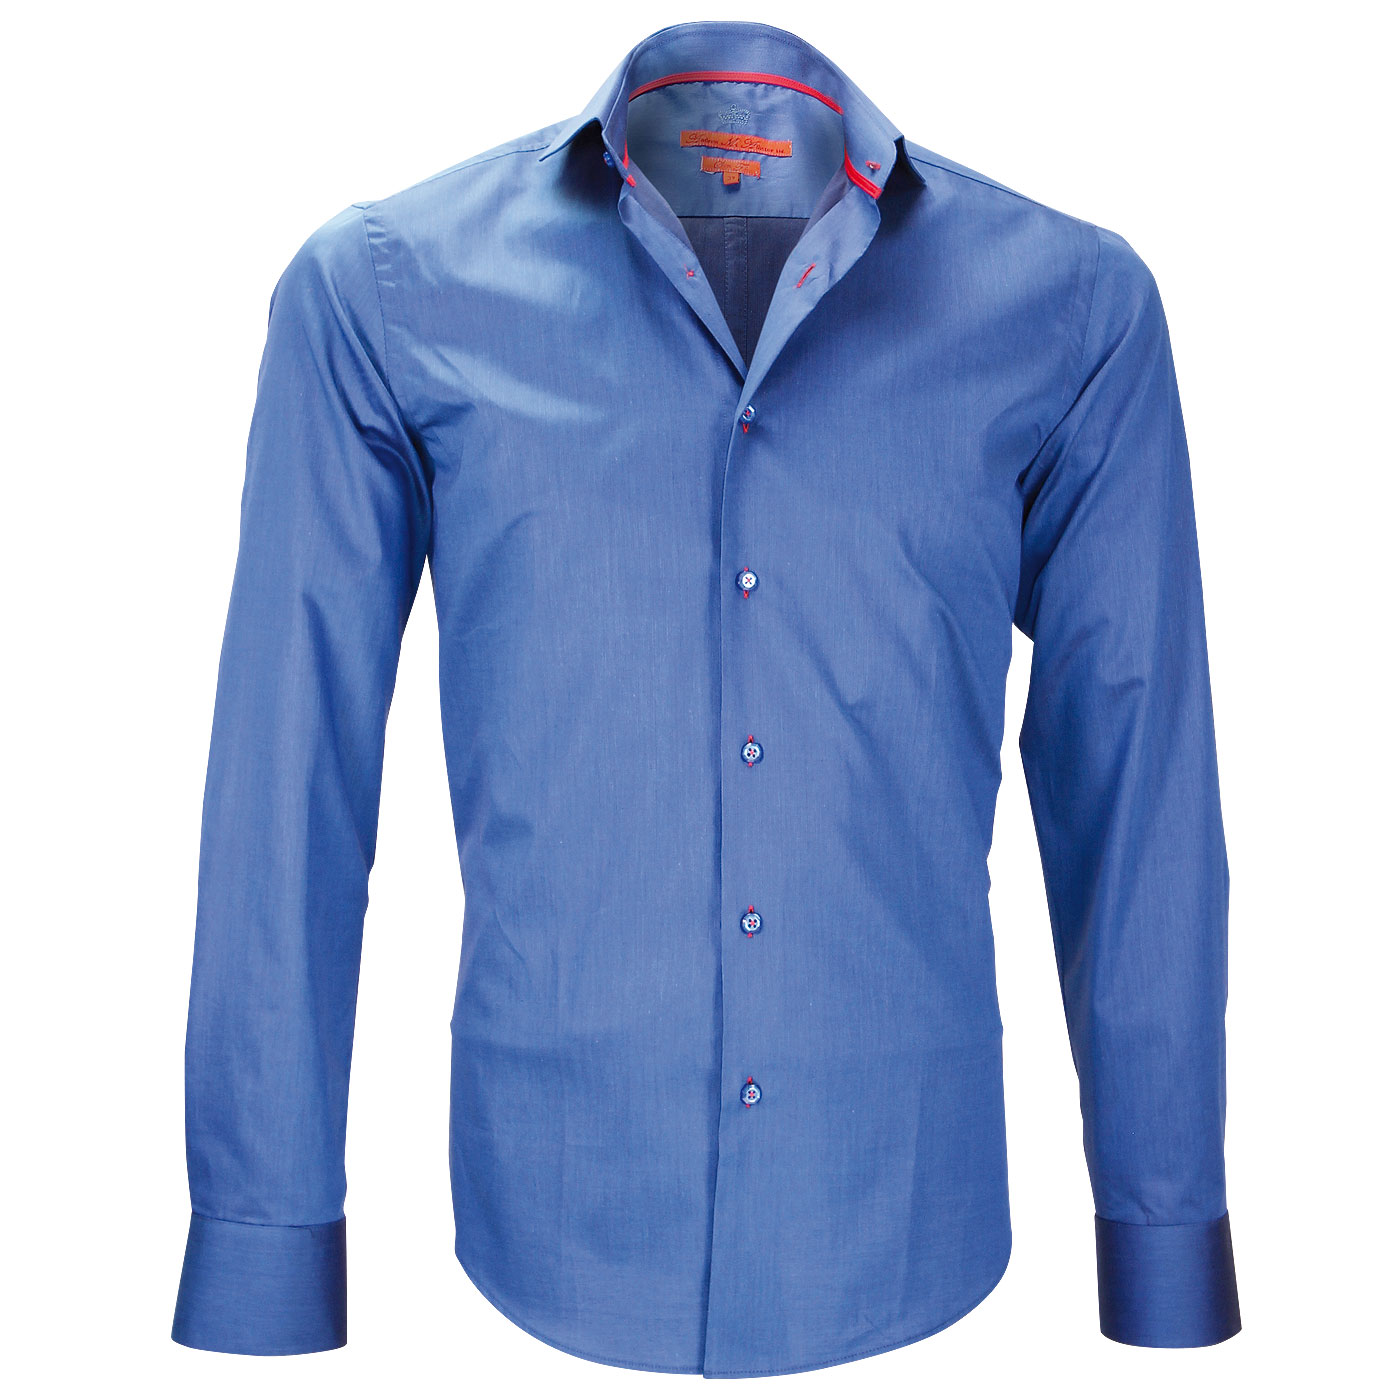 Men's Shirt Online Delivered in 72H on webmenshirts.com